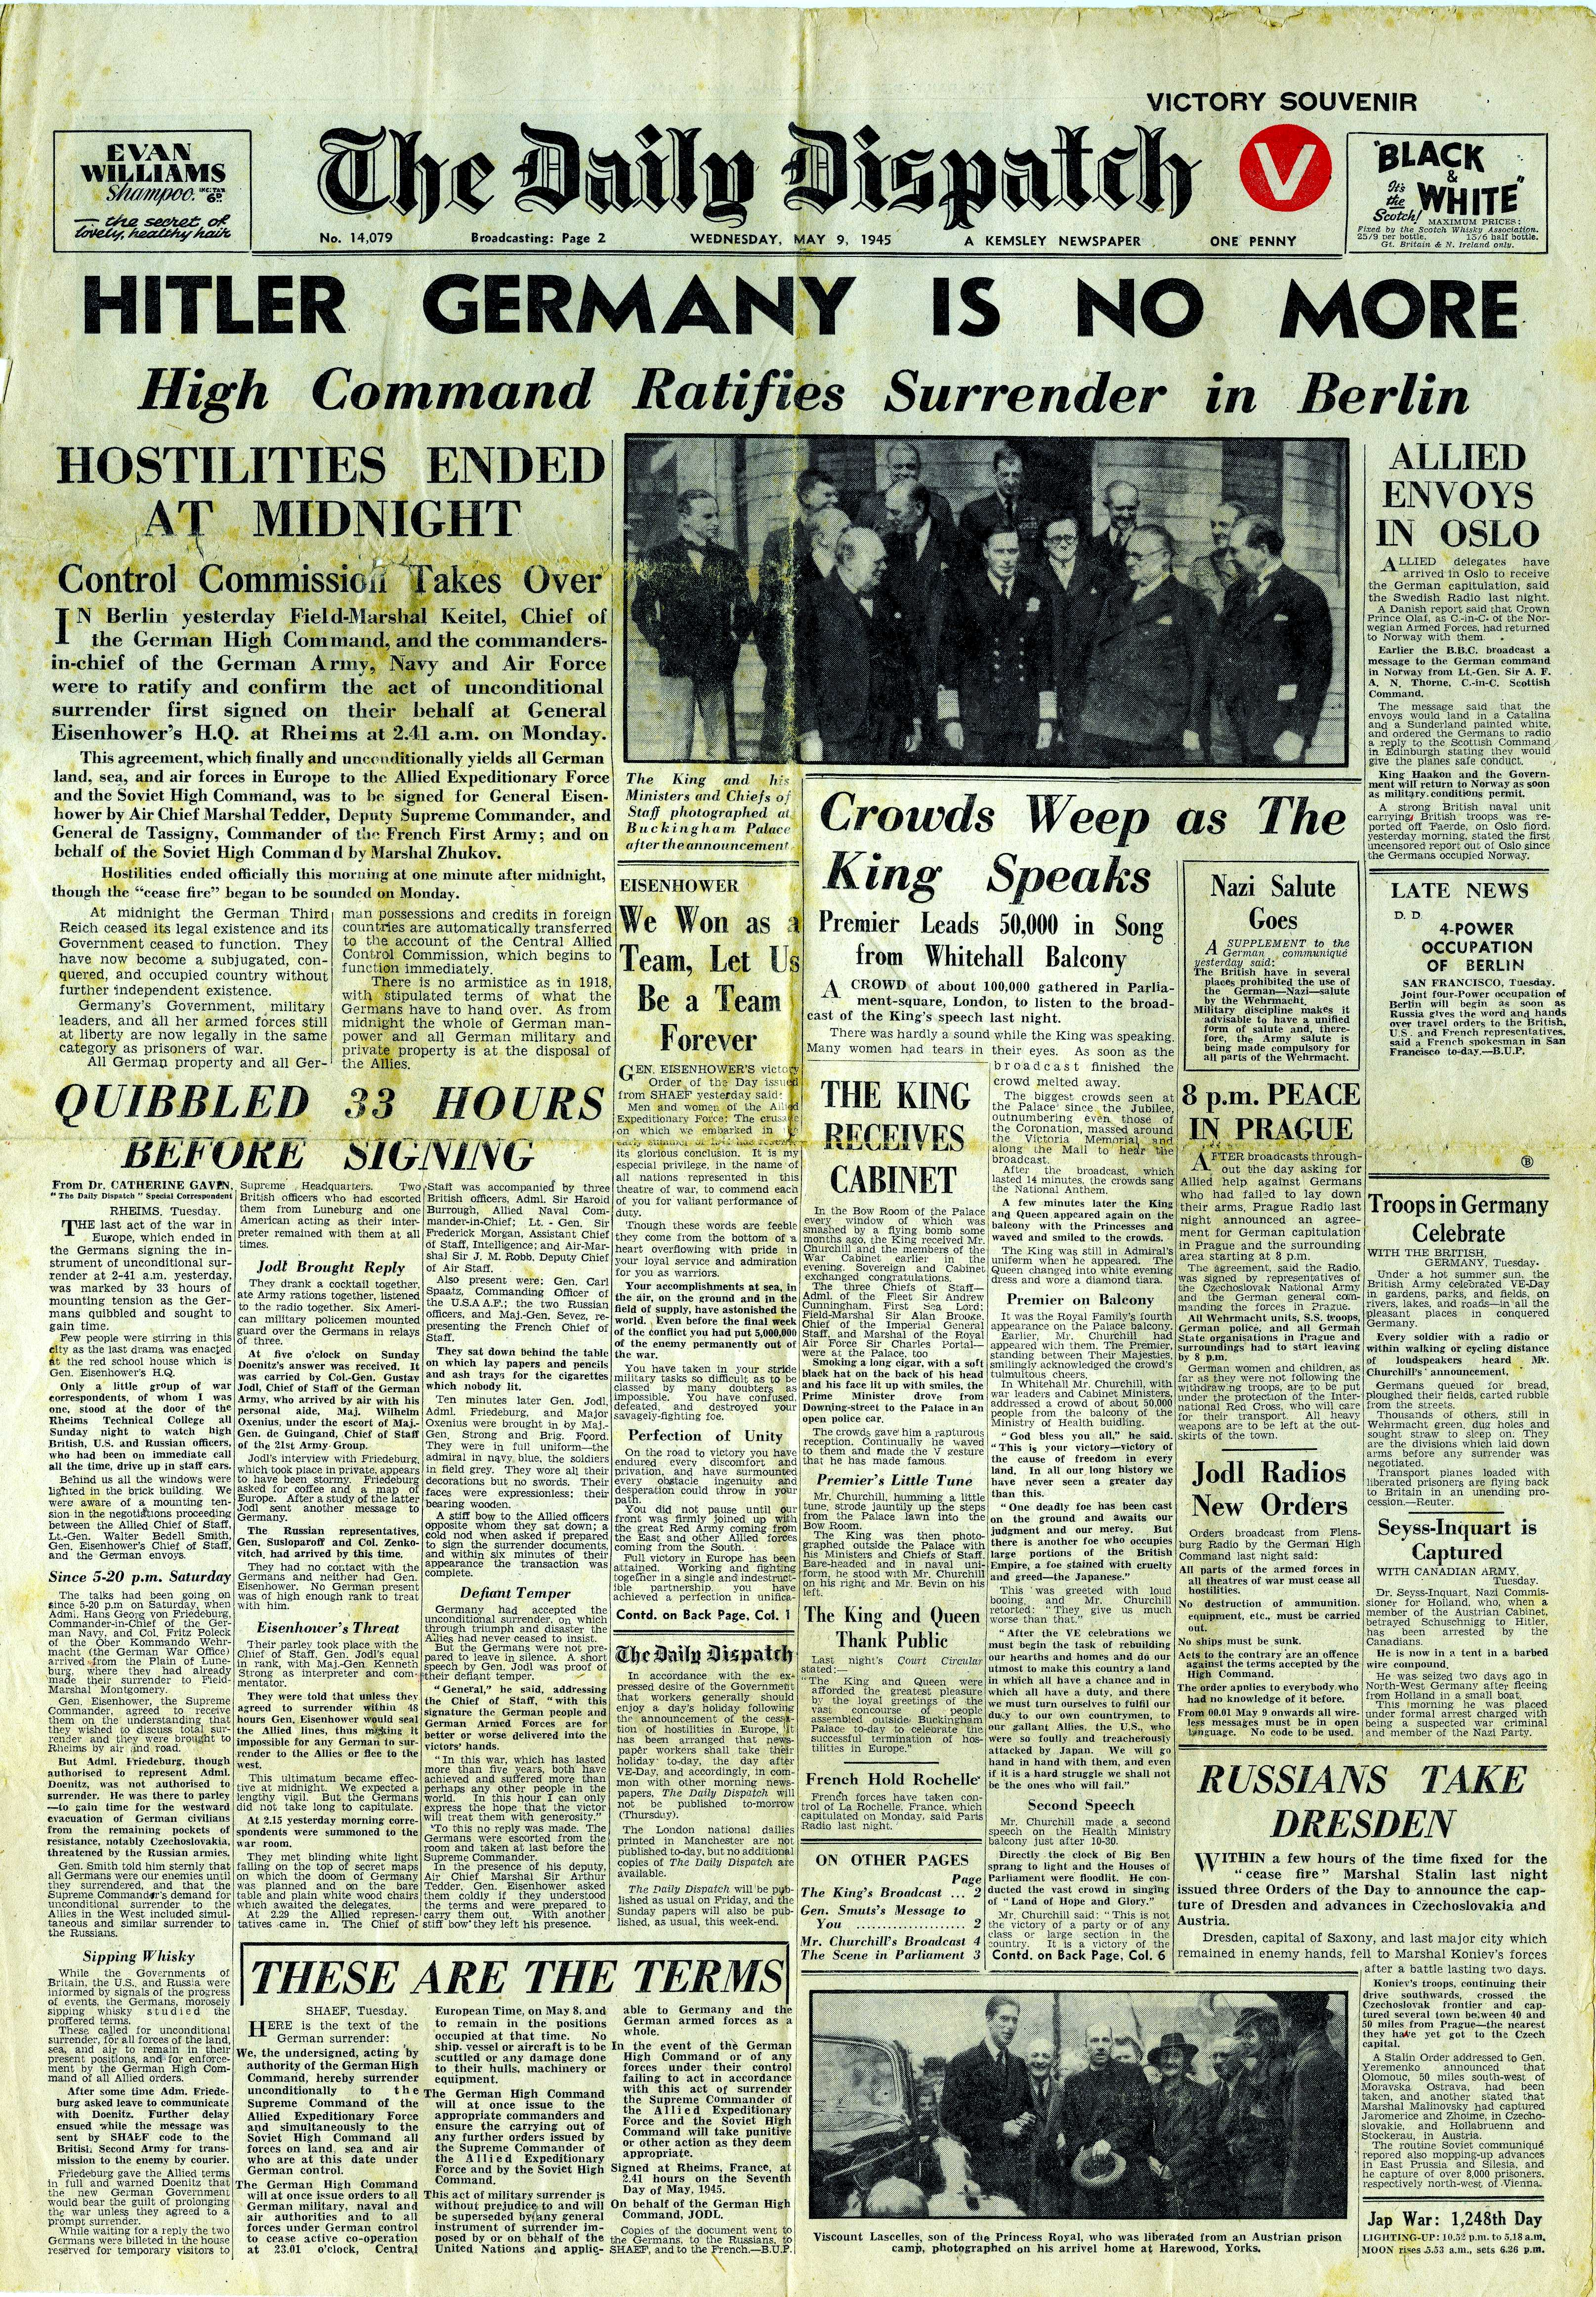 Wednesday, 9th May 1945 - The Daily Dispatch, page 1